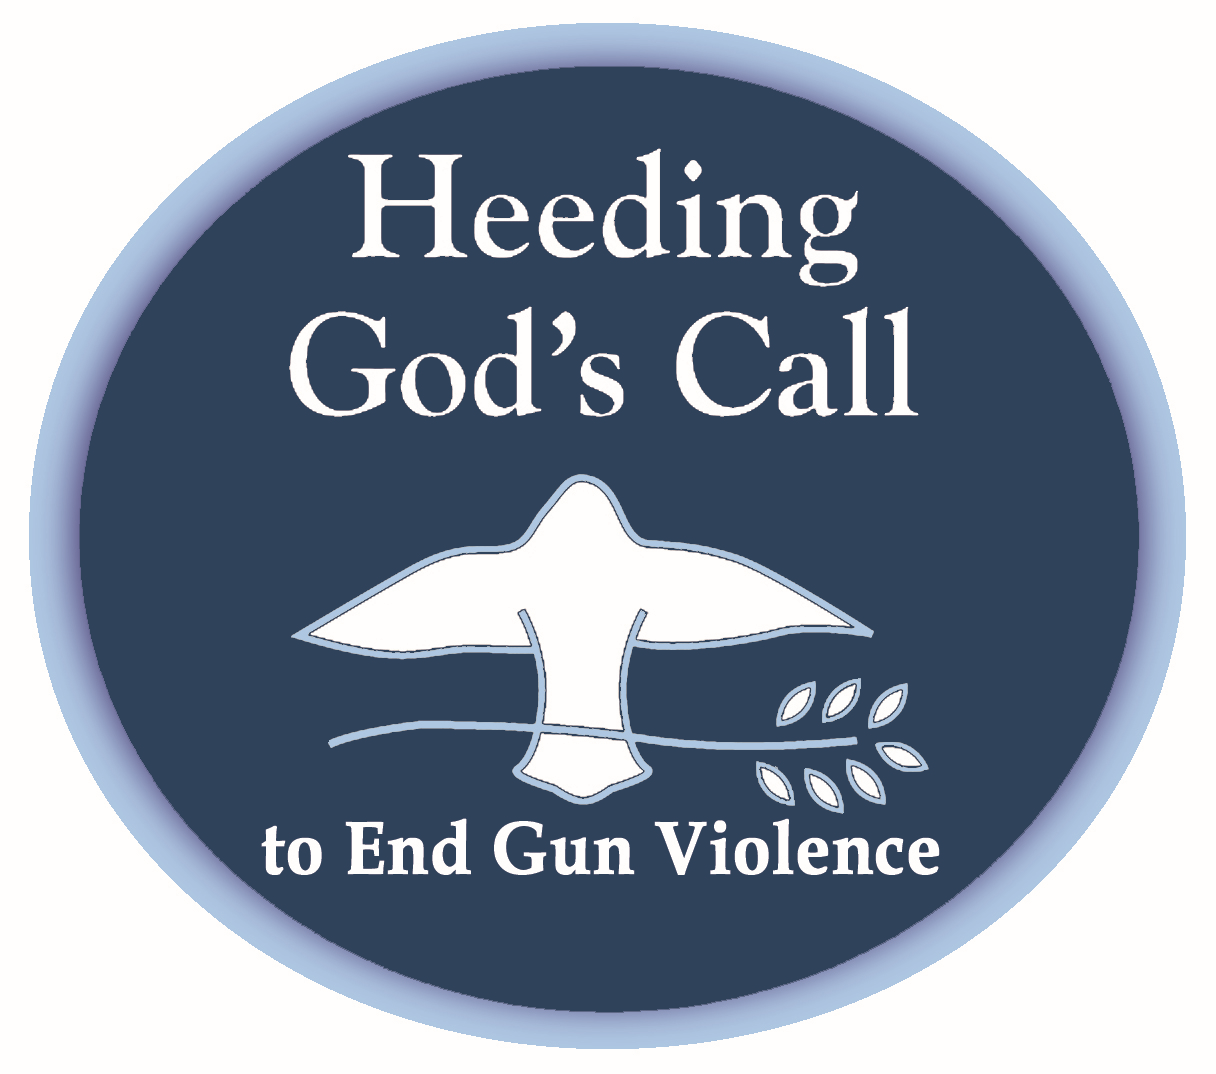 Heeding God's Call to End Gun Violence